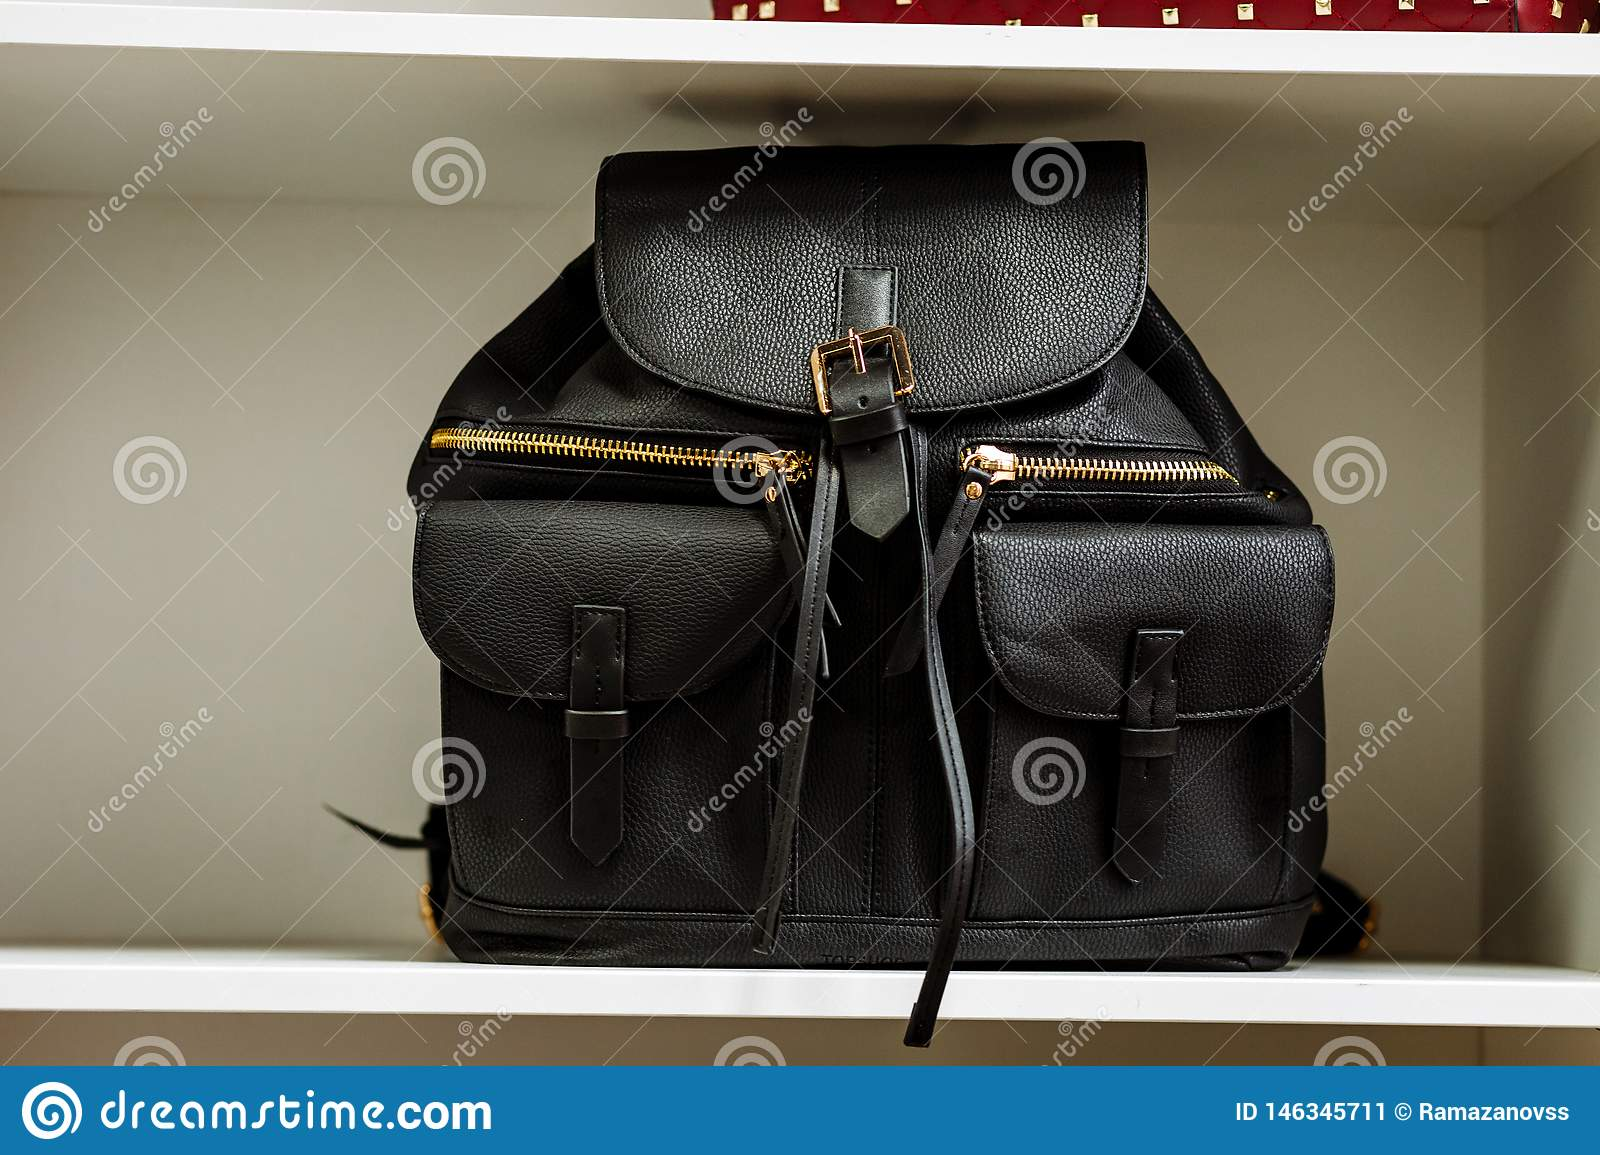 Black leather backpack with golden zipper pockets on a white shelf in the store